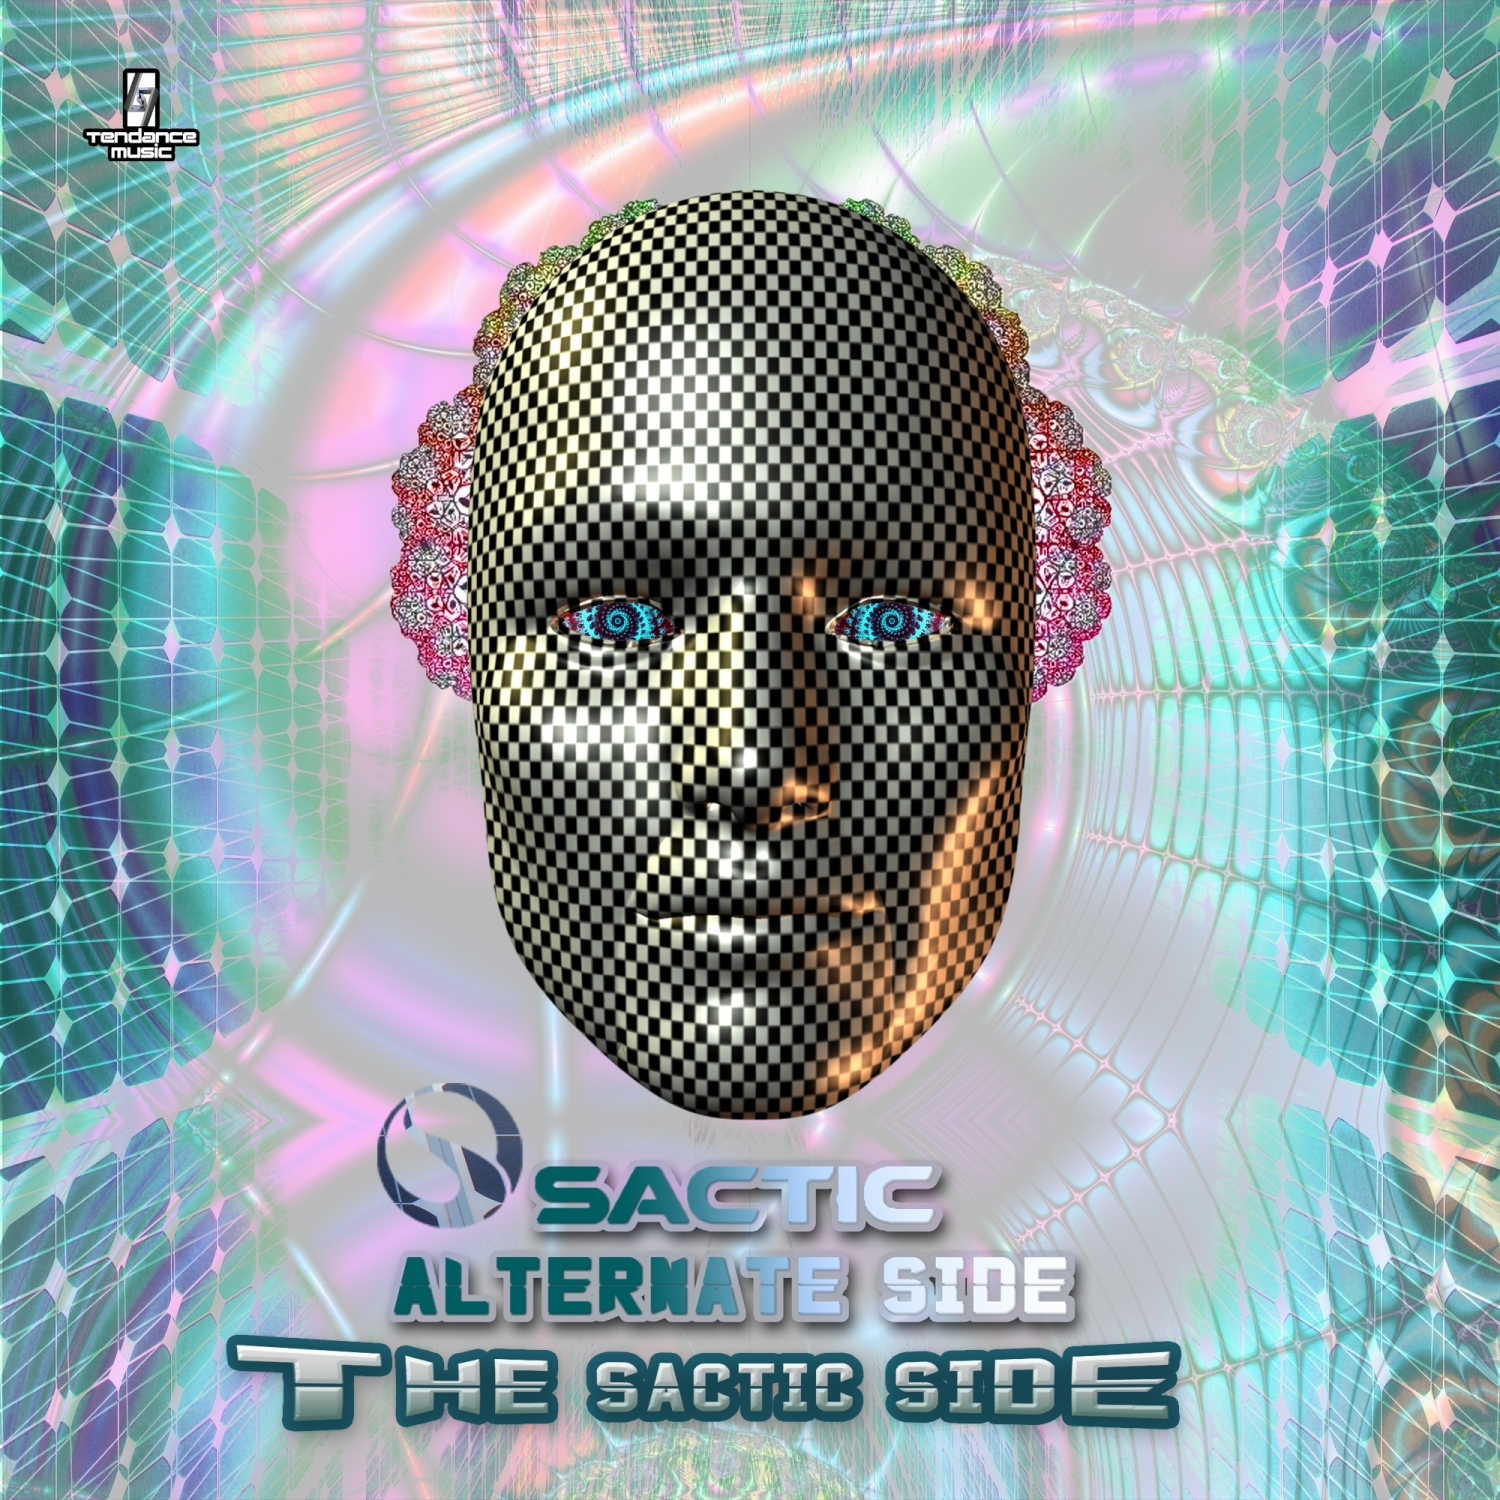 Alternate Side & Sactic - The Sactic Side (feat. Sactic)  (Original Mix)